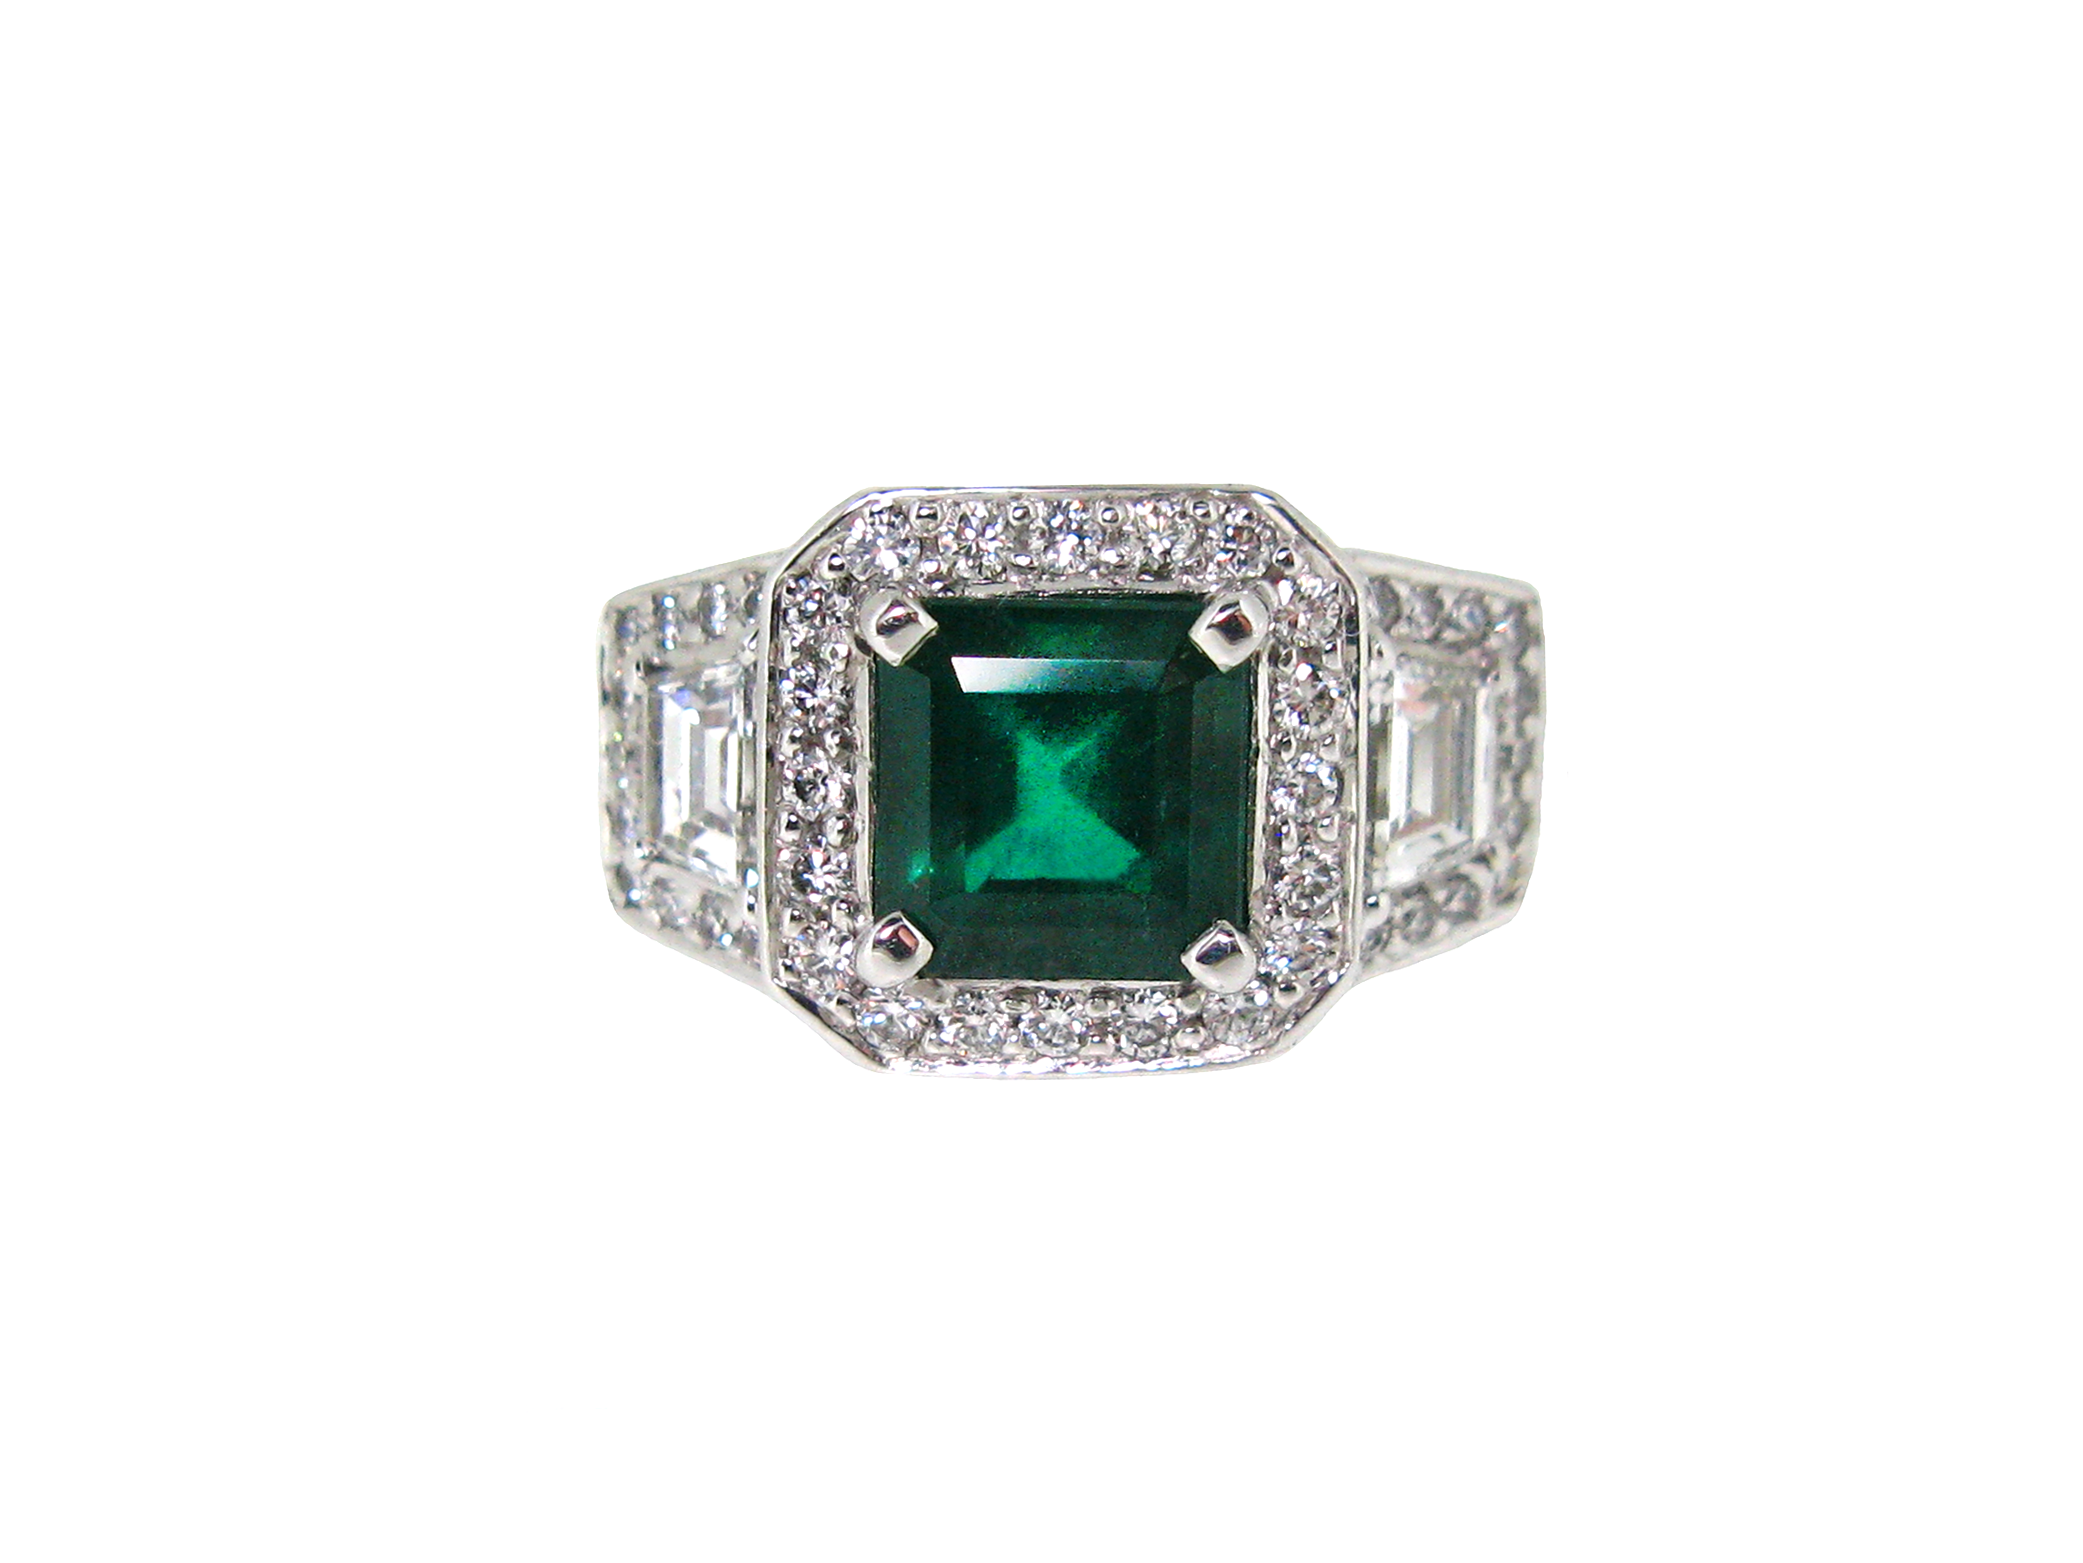 Emerald And Diamond Art Deco Style Ring | B19212